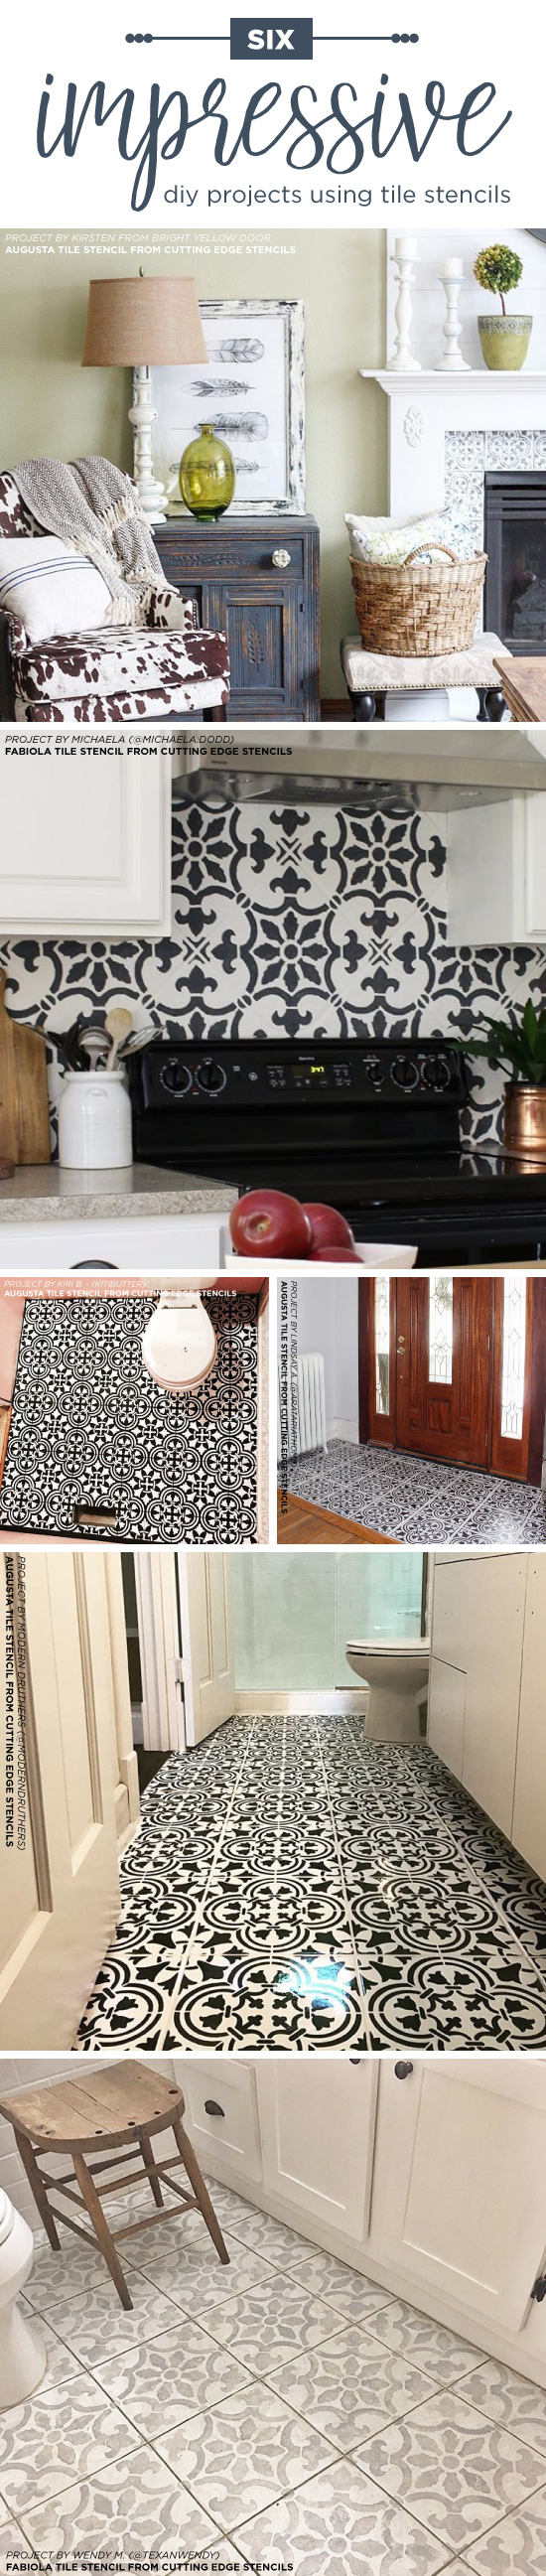 Cutting Edge Stencils shares DIY home decorating ideas like floors and backsplashes using tile stencil patterns.  http://www.cuttingedgestencils.com/wall-stencils-stencil-designs.html